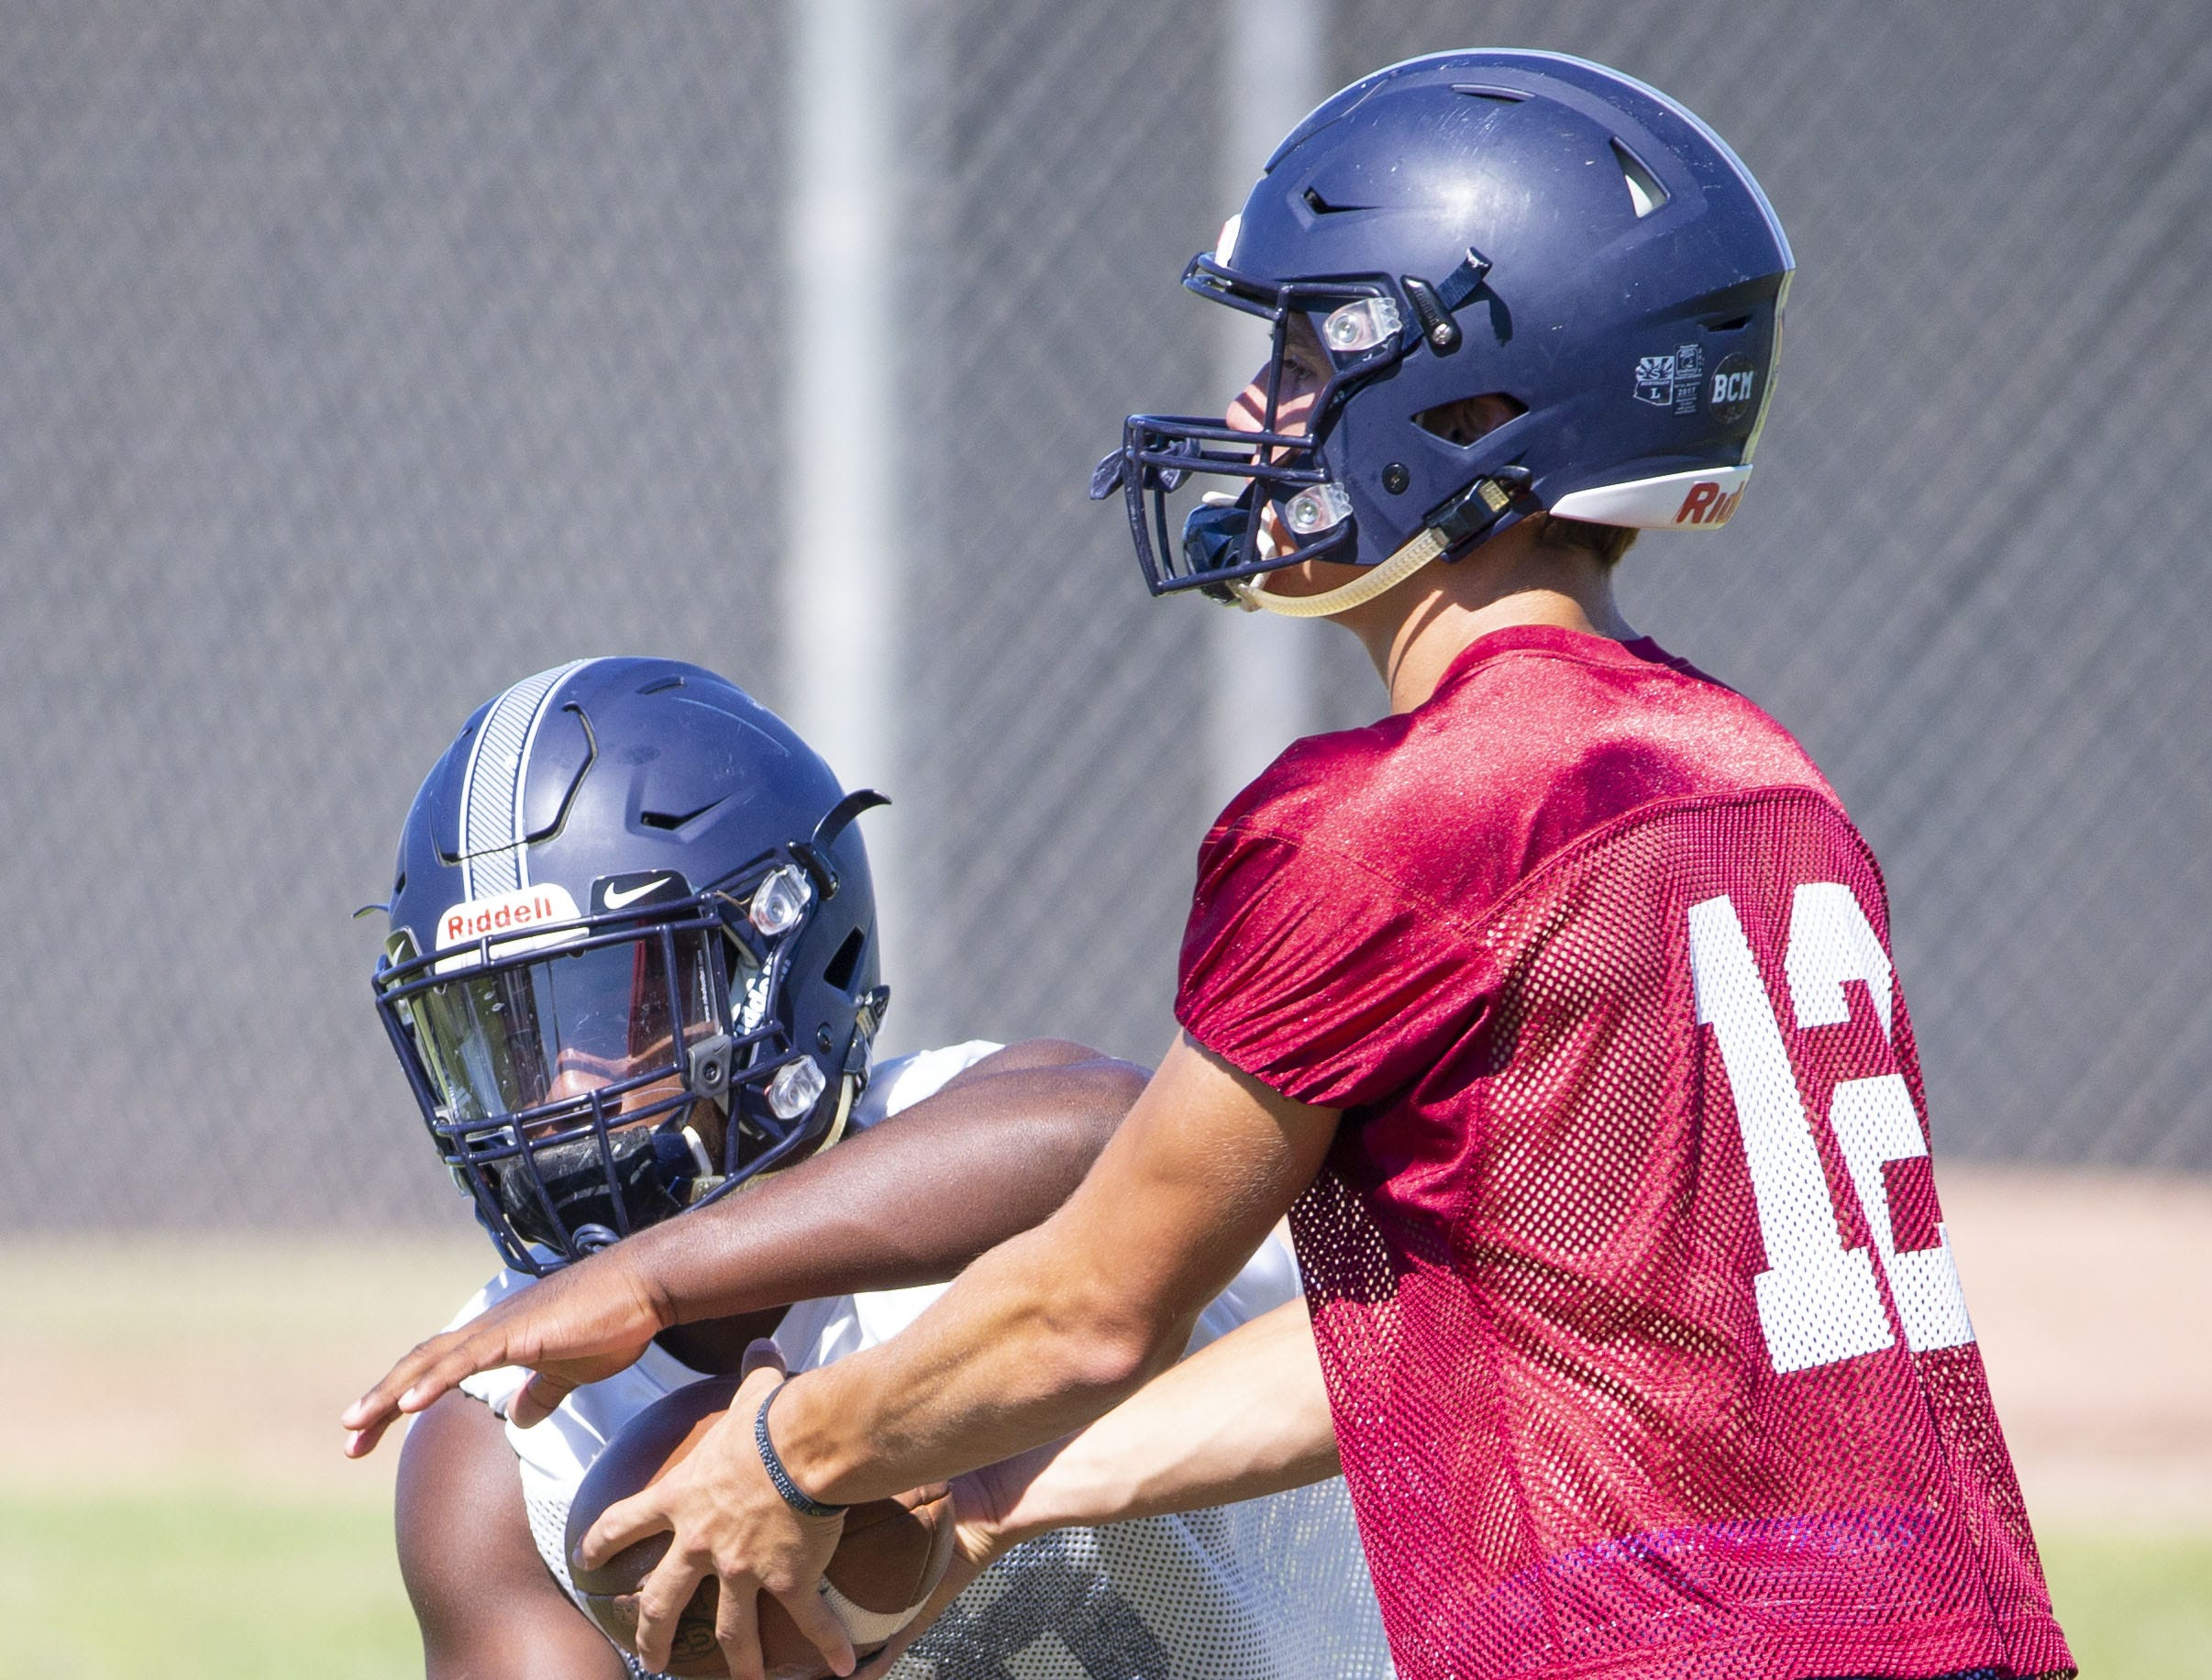 Perry High football quarterback Chubba Purdy, (12) hands off the ball to running back Jalen Young during practice in Gilbert on September 26,  2018.